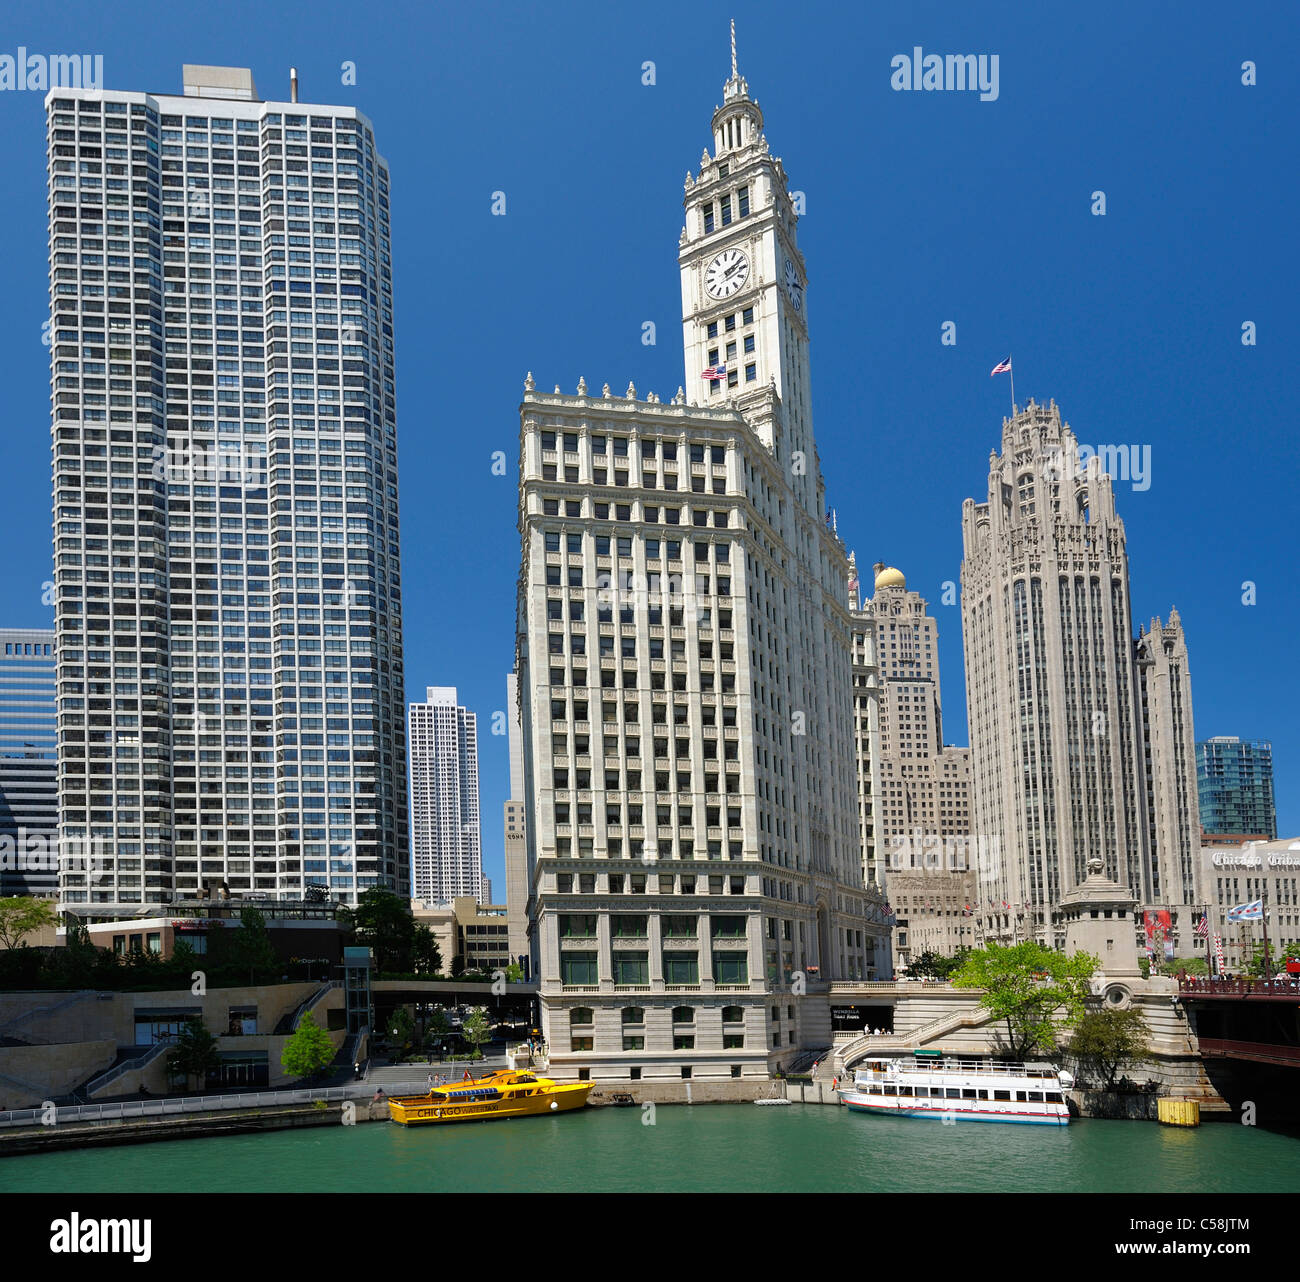 Wrigley Building, Chicago River, Chicago, Illinois, USA, United States, America, city, skyline, buildings, river - Stock Image